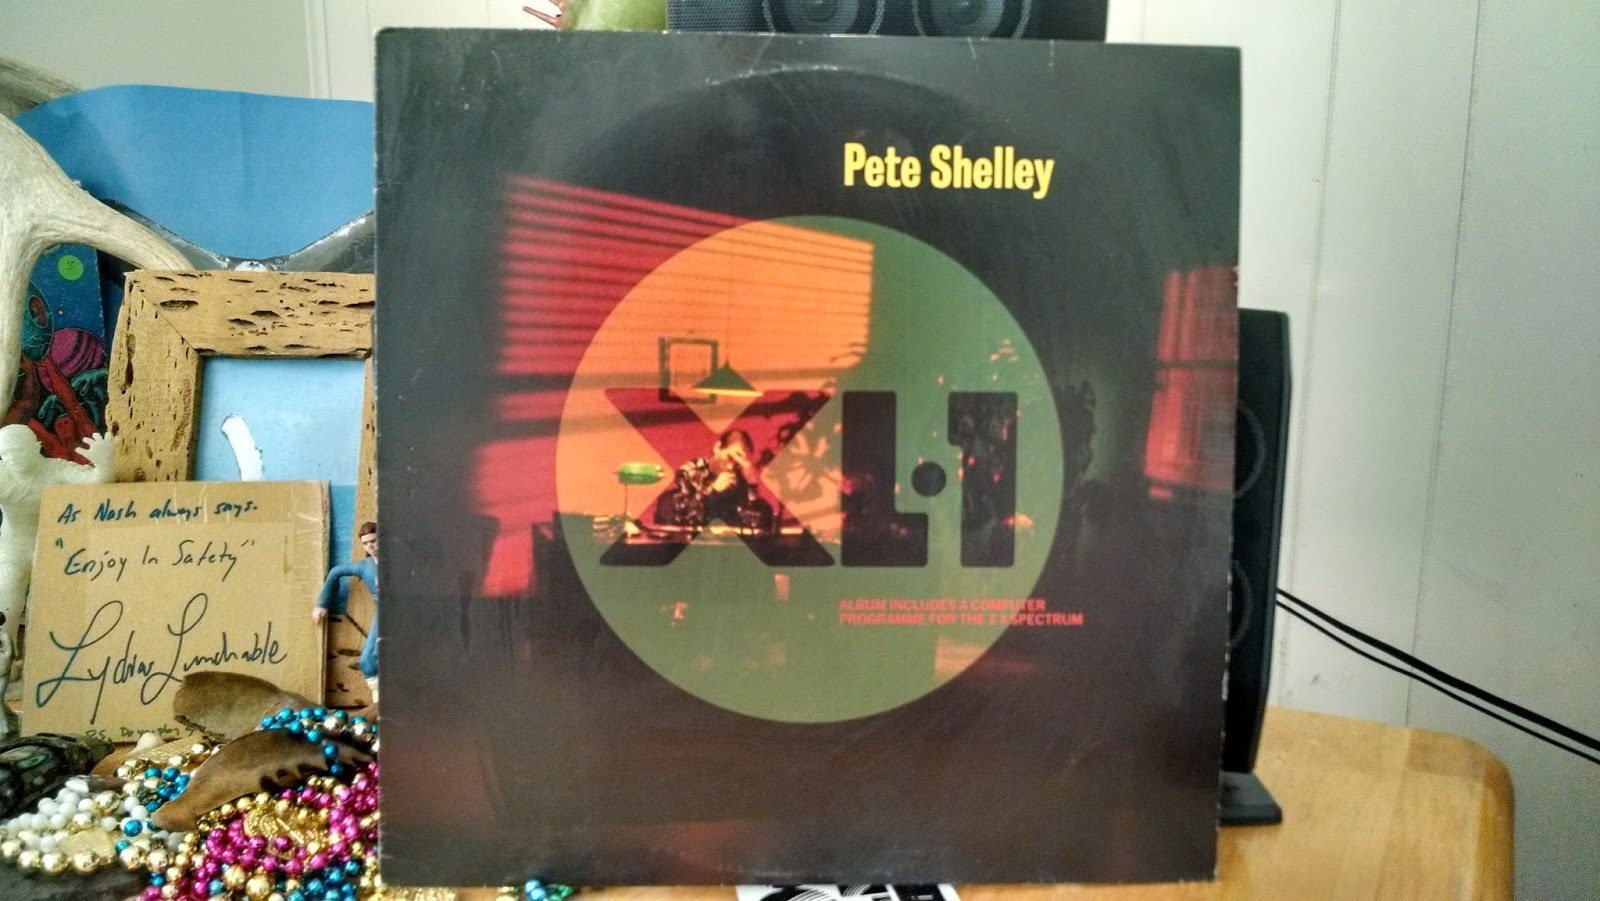 Pete Shelley Homosapien Love In Vain